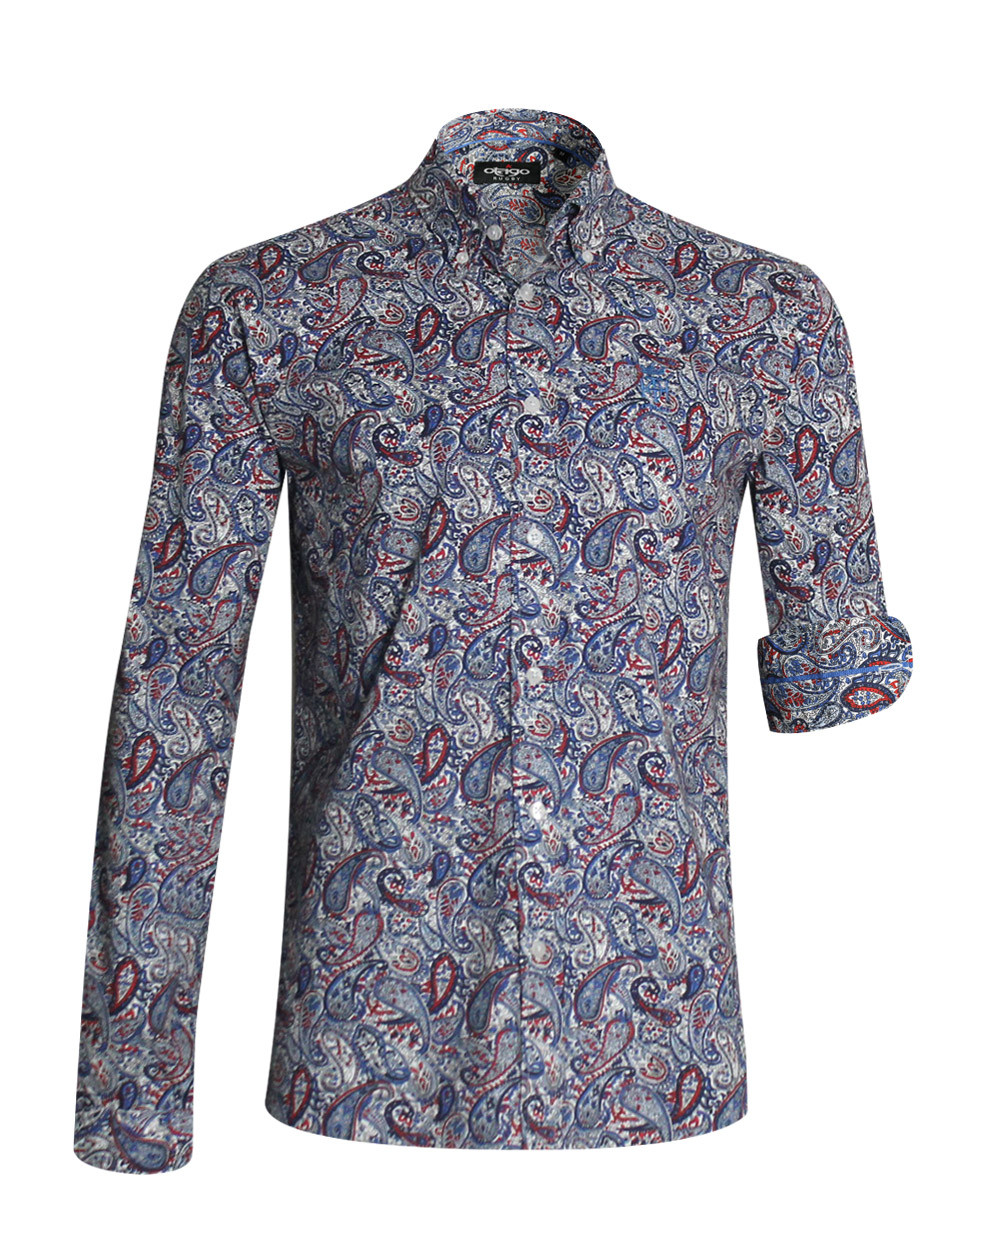 Chemise manches longues 119 Otago rugby à motifs marine rouge homme